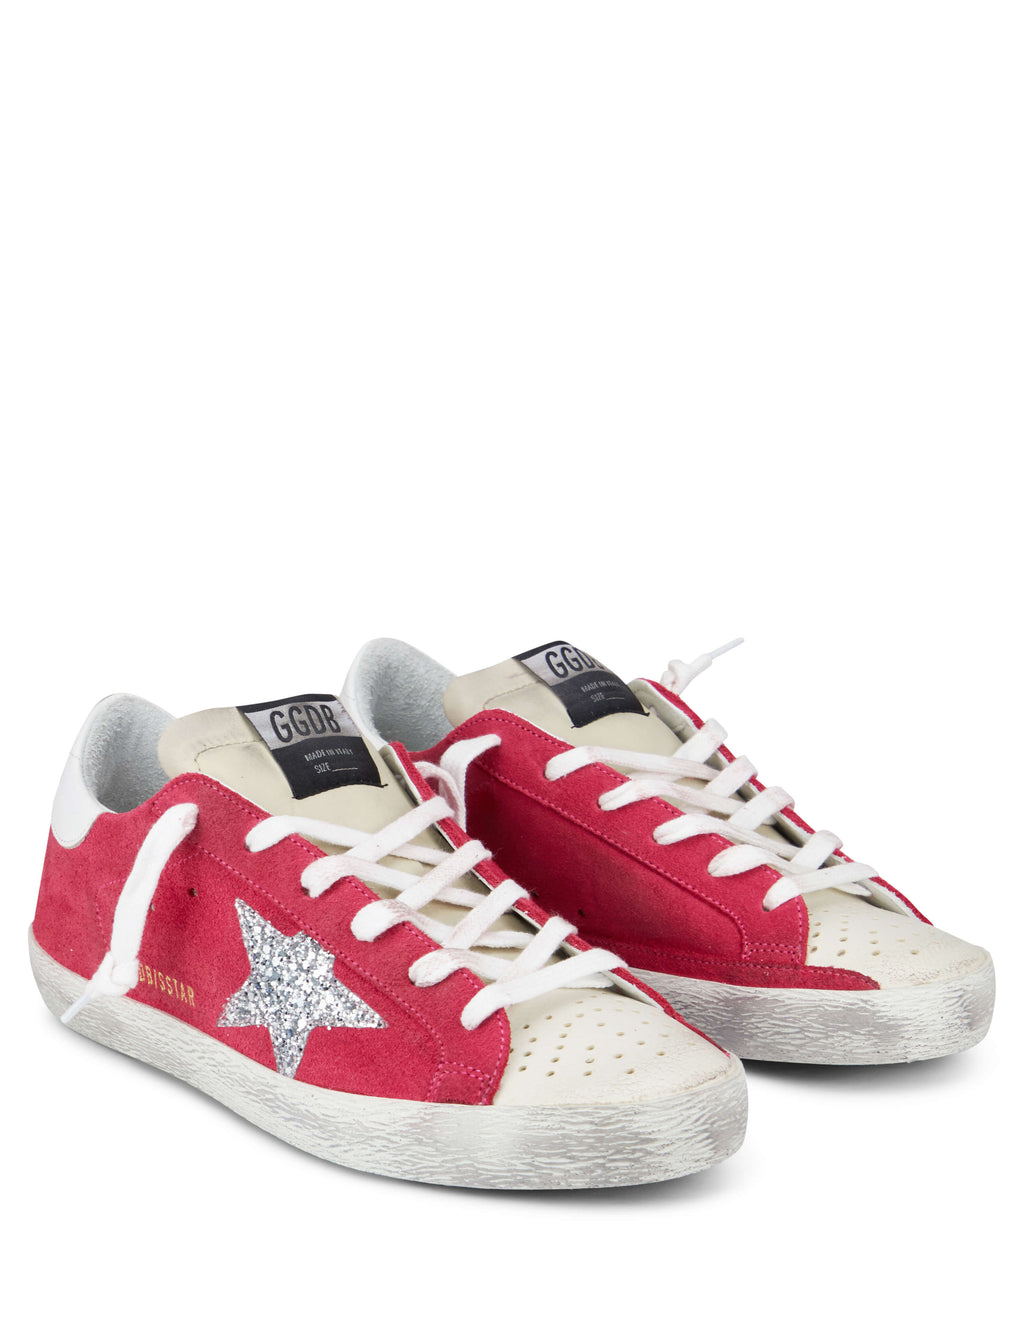 Golden Goose Deluxe Brand Women's Giulio Fashion Strawberry Superstar Sneakers G34WS590O49